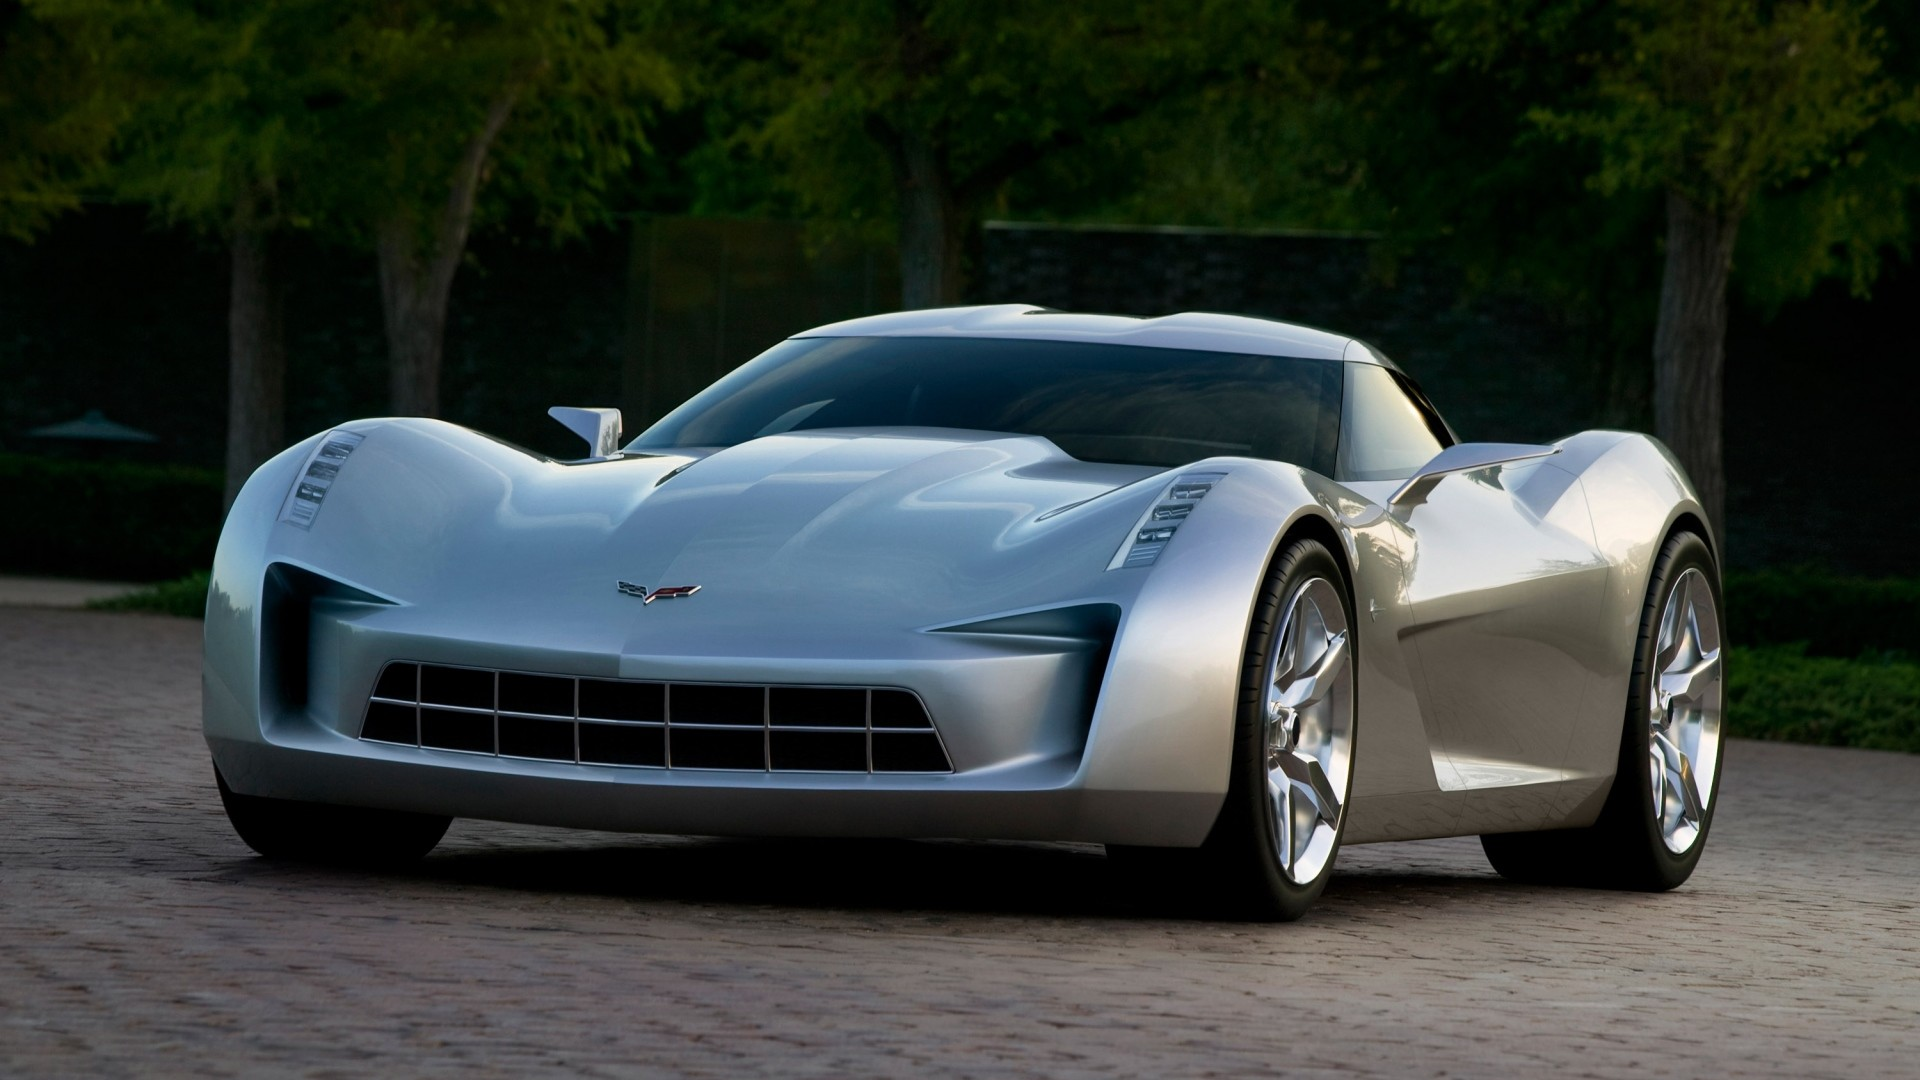 1920x1080 chevrolet corvette stingray, sports car wallpapers and backgrounds